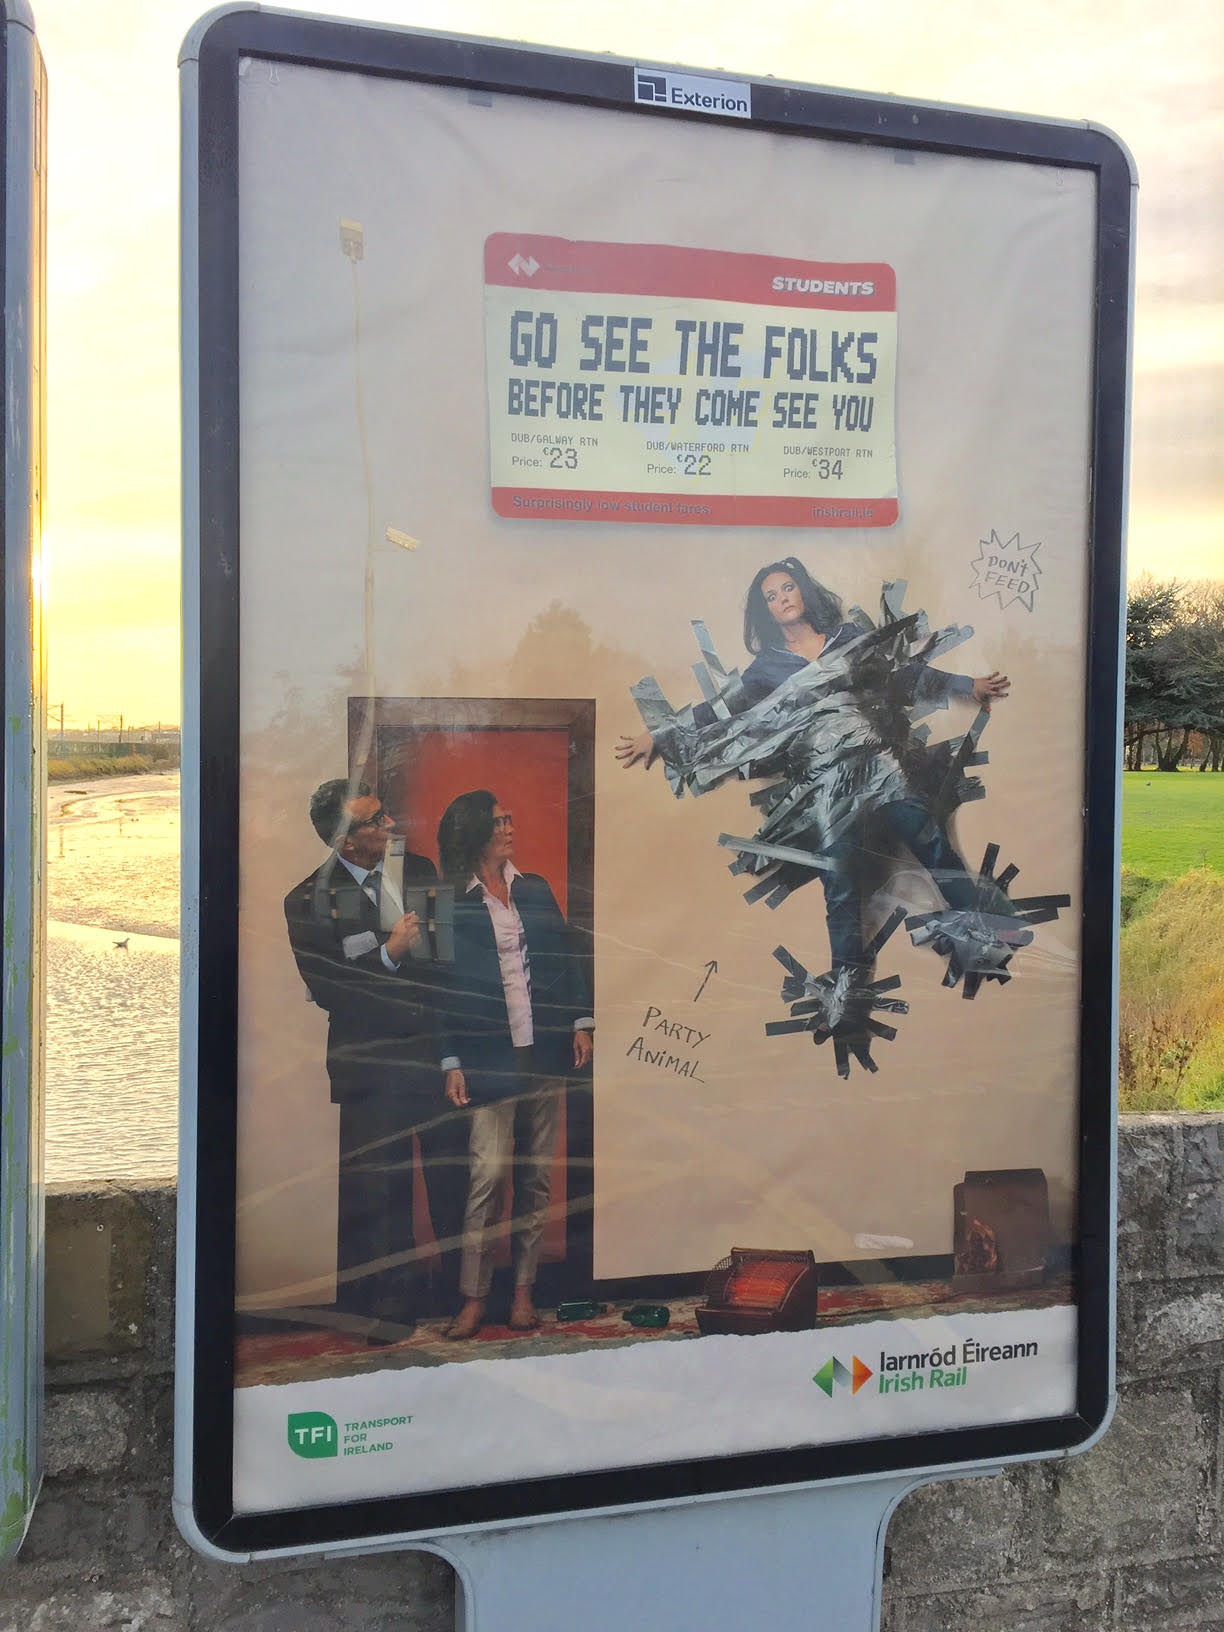 Irish Rail – go see the folks before they come see you